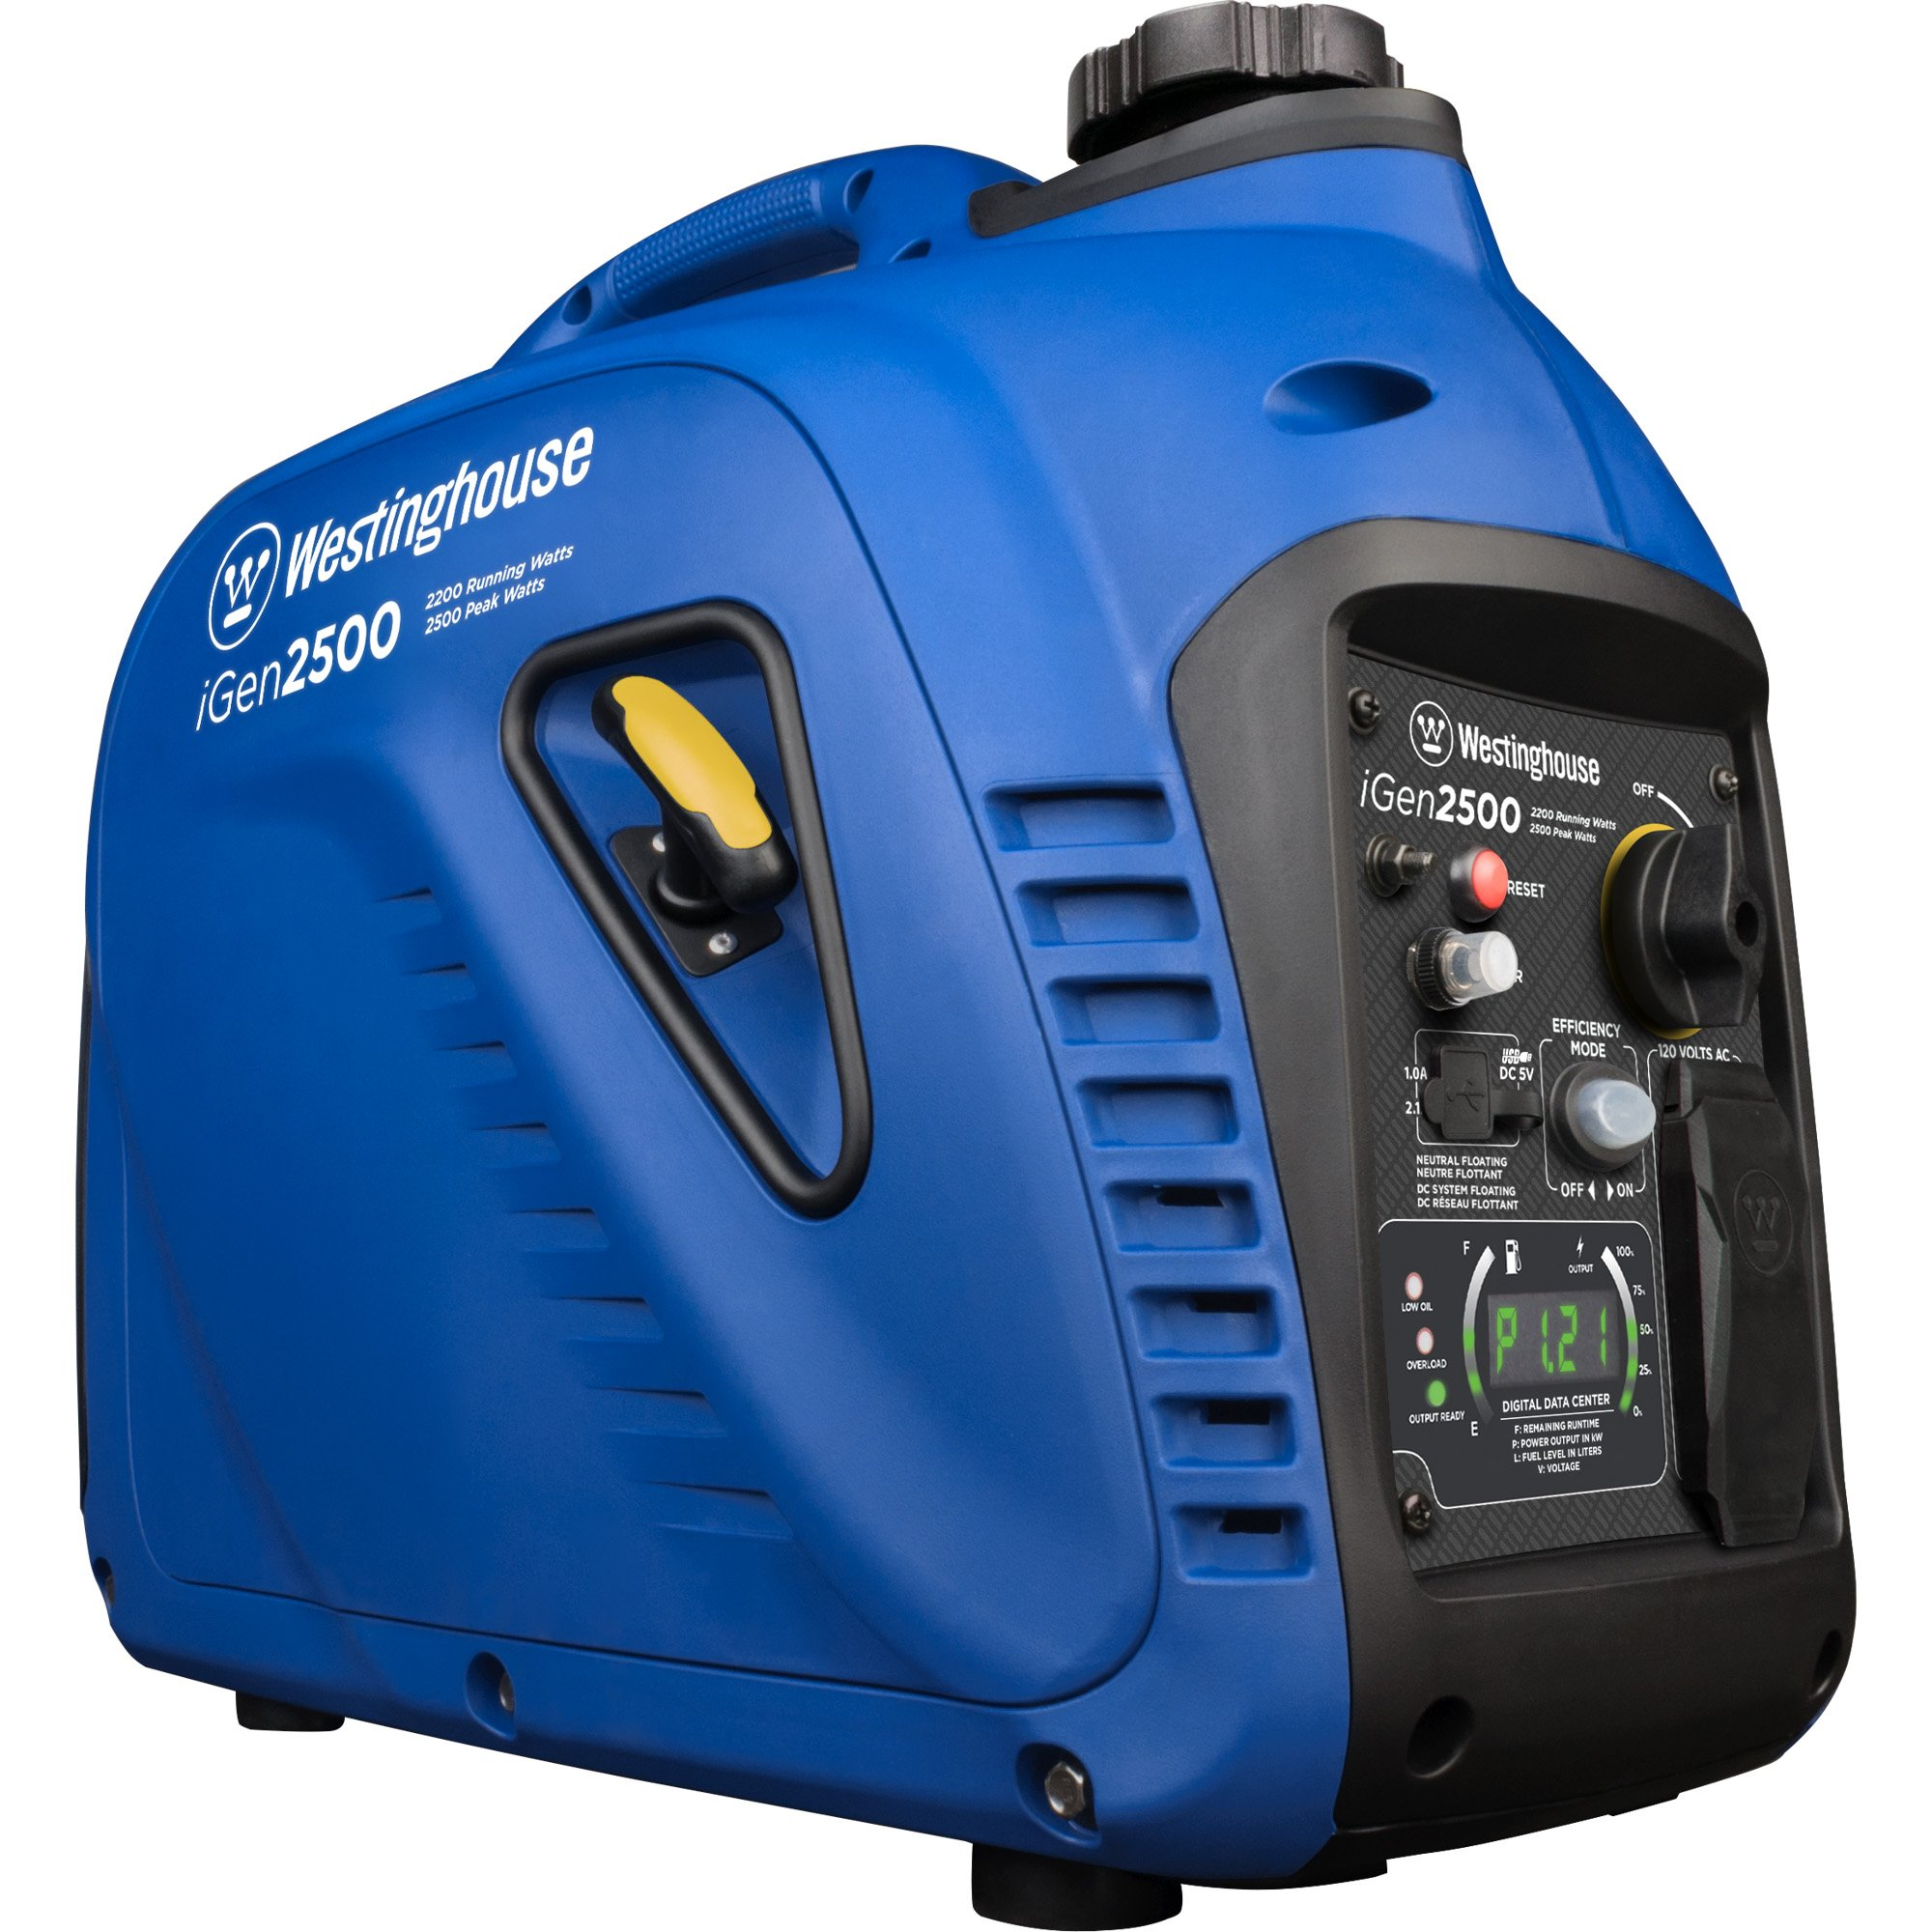 Westinghouse IGen2500 Portable Inverter Generator Gas Powered – CARB Compliant